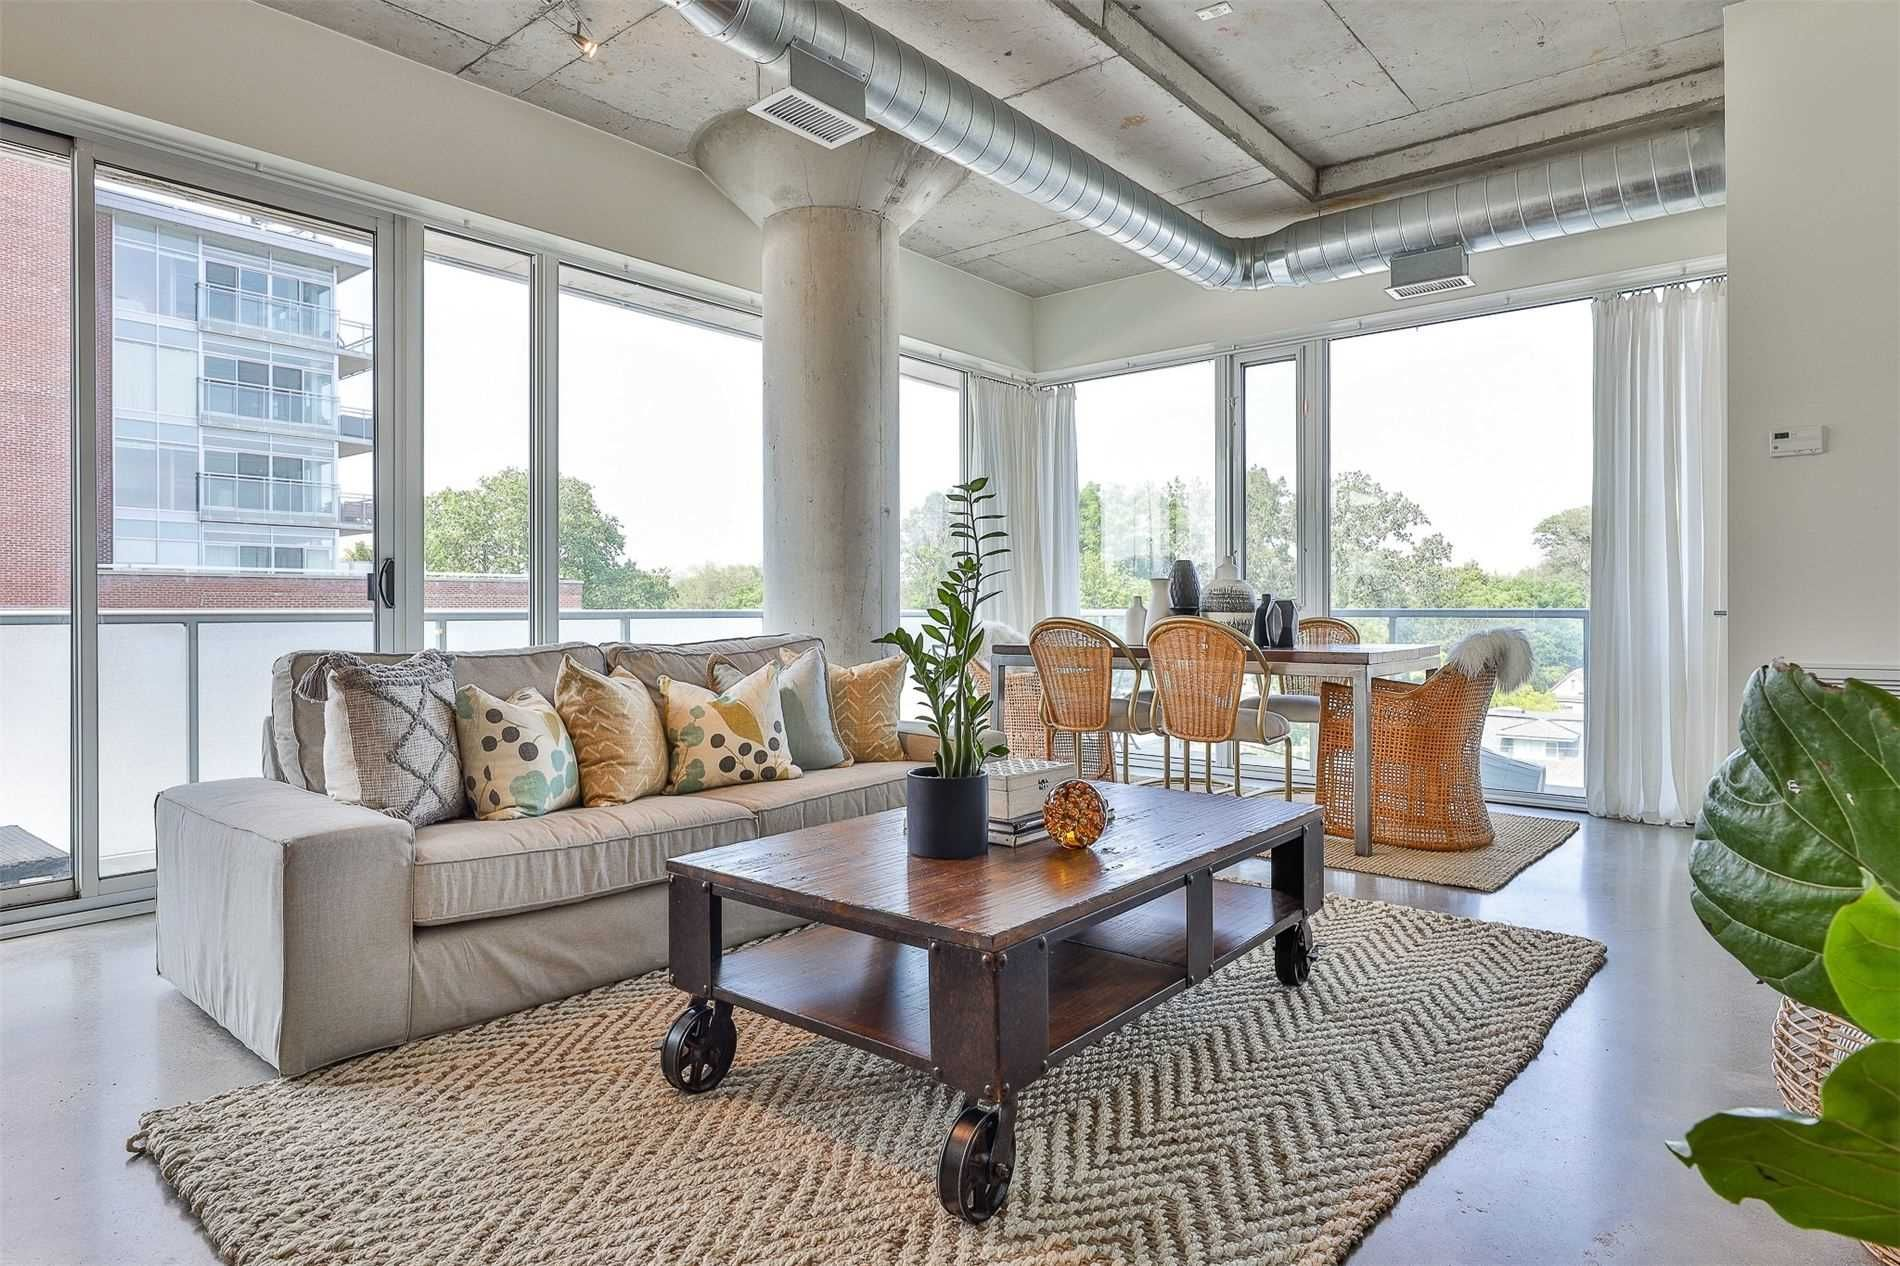 201 Carlaw Ave, unit 504 for sale in Toronto - image #1